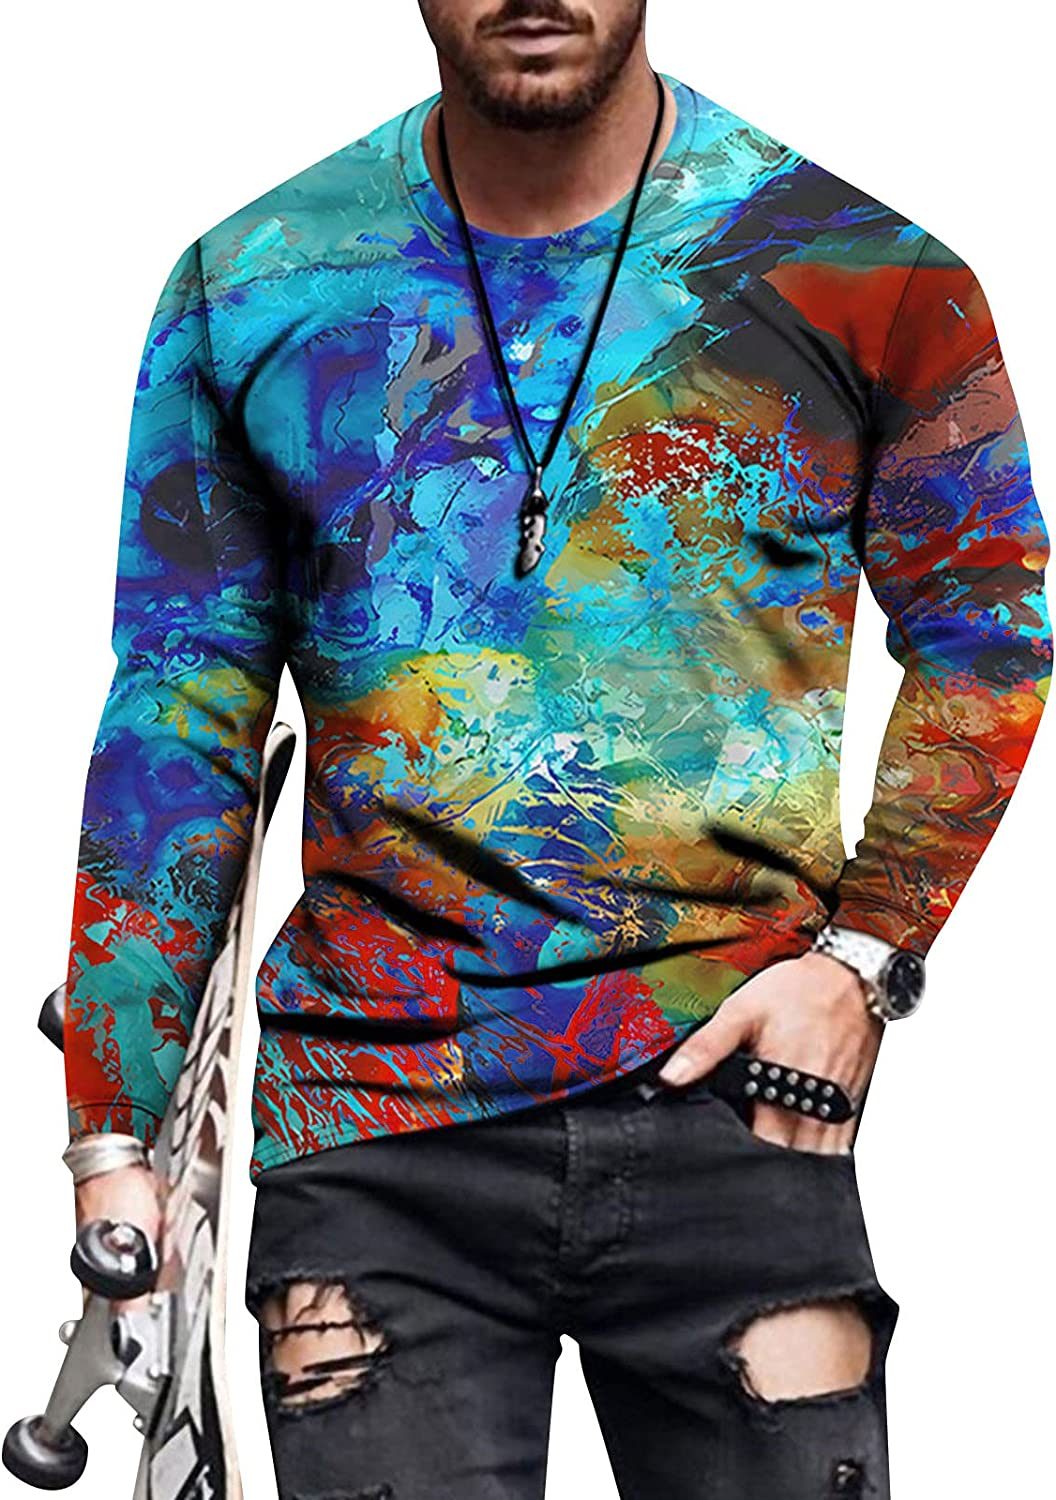 Men's Autumn Casual Long Sleeve Crew Neck T-Shirts Classic Printed Pullover Shirts Slim Fit Outdoor Sport Tops Blouse